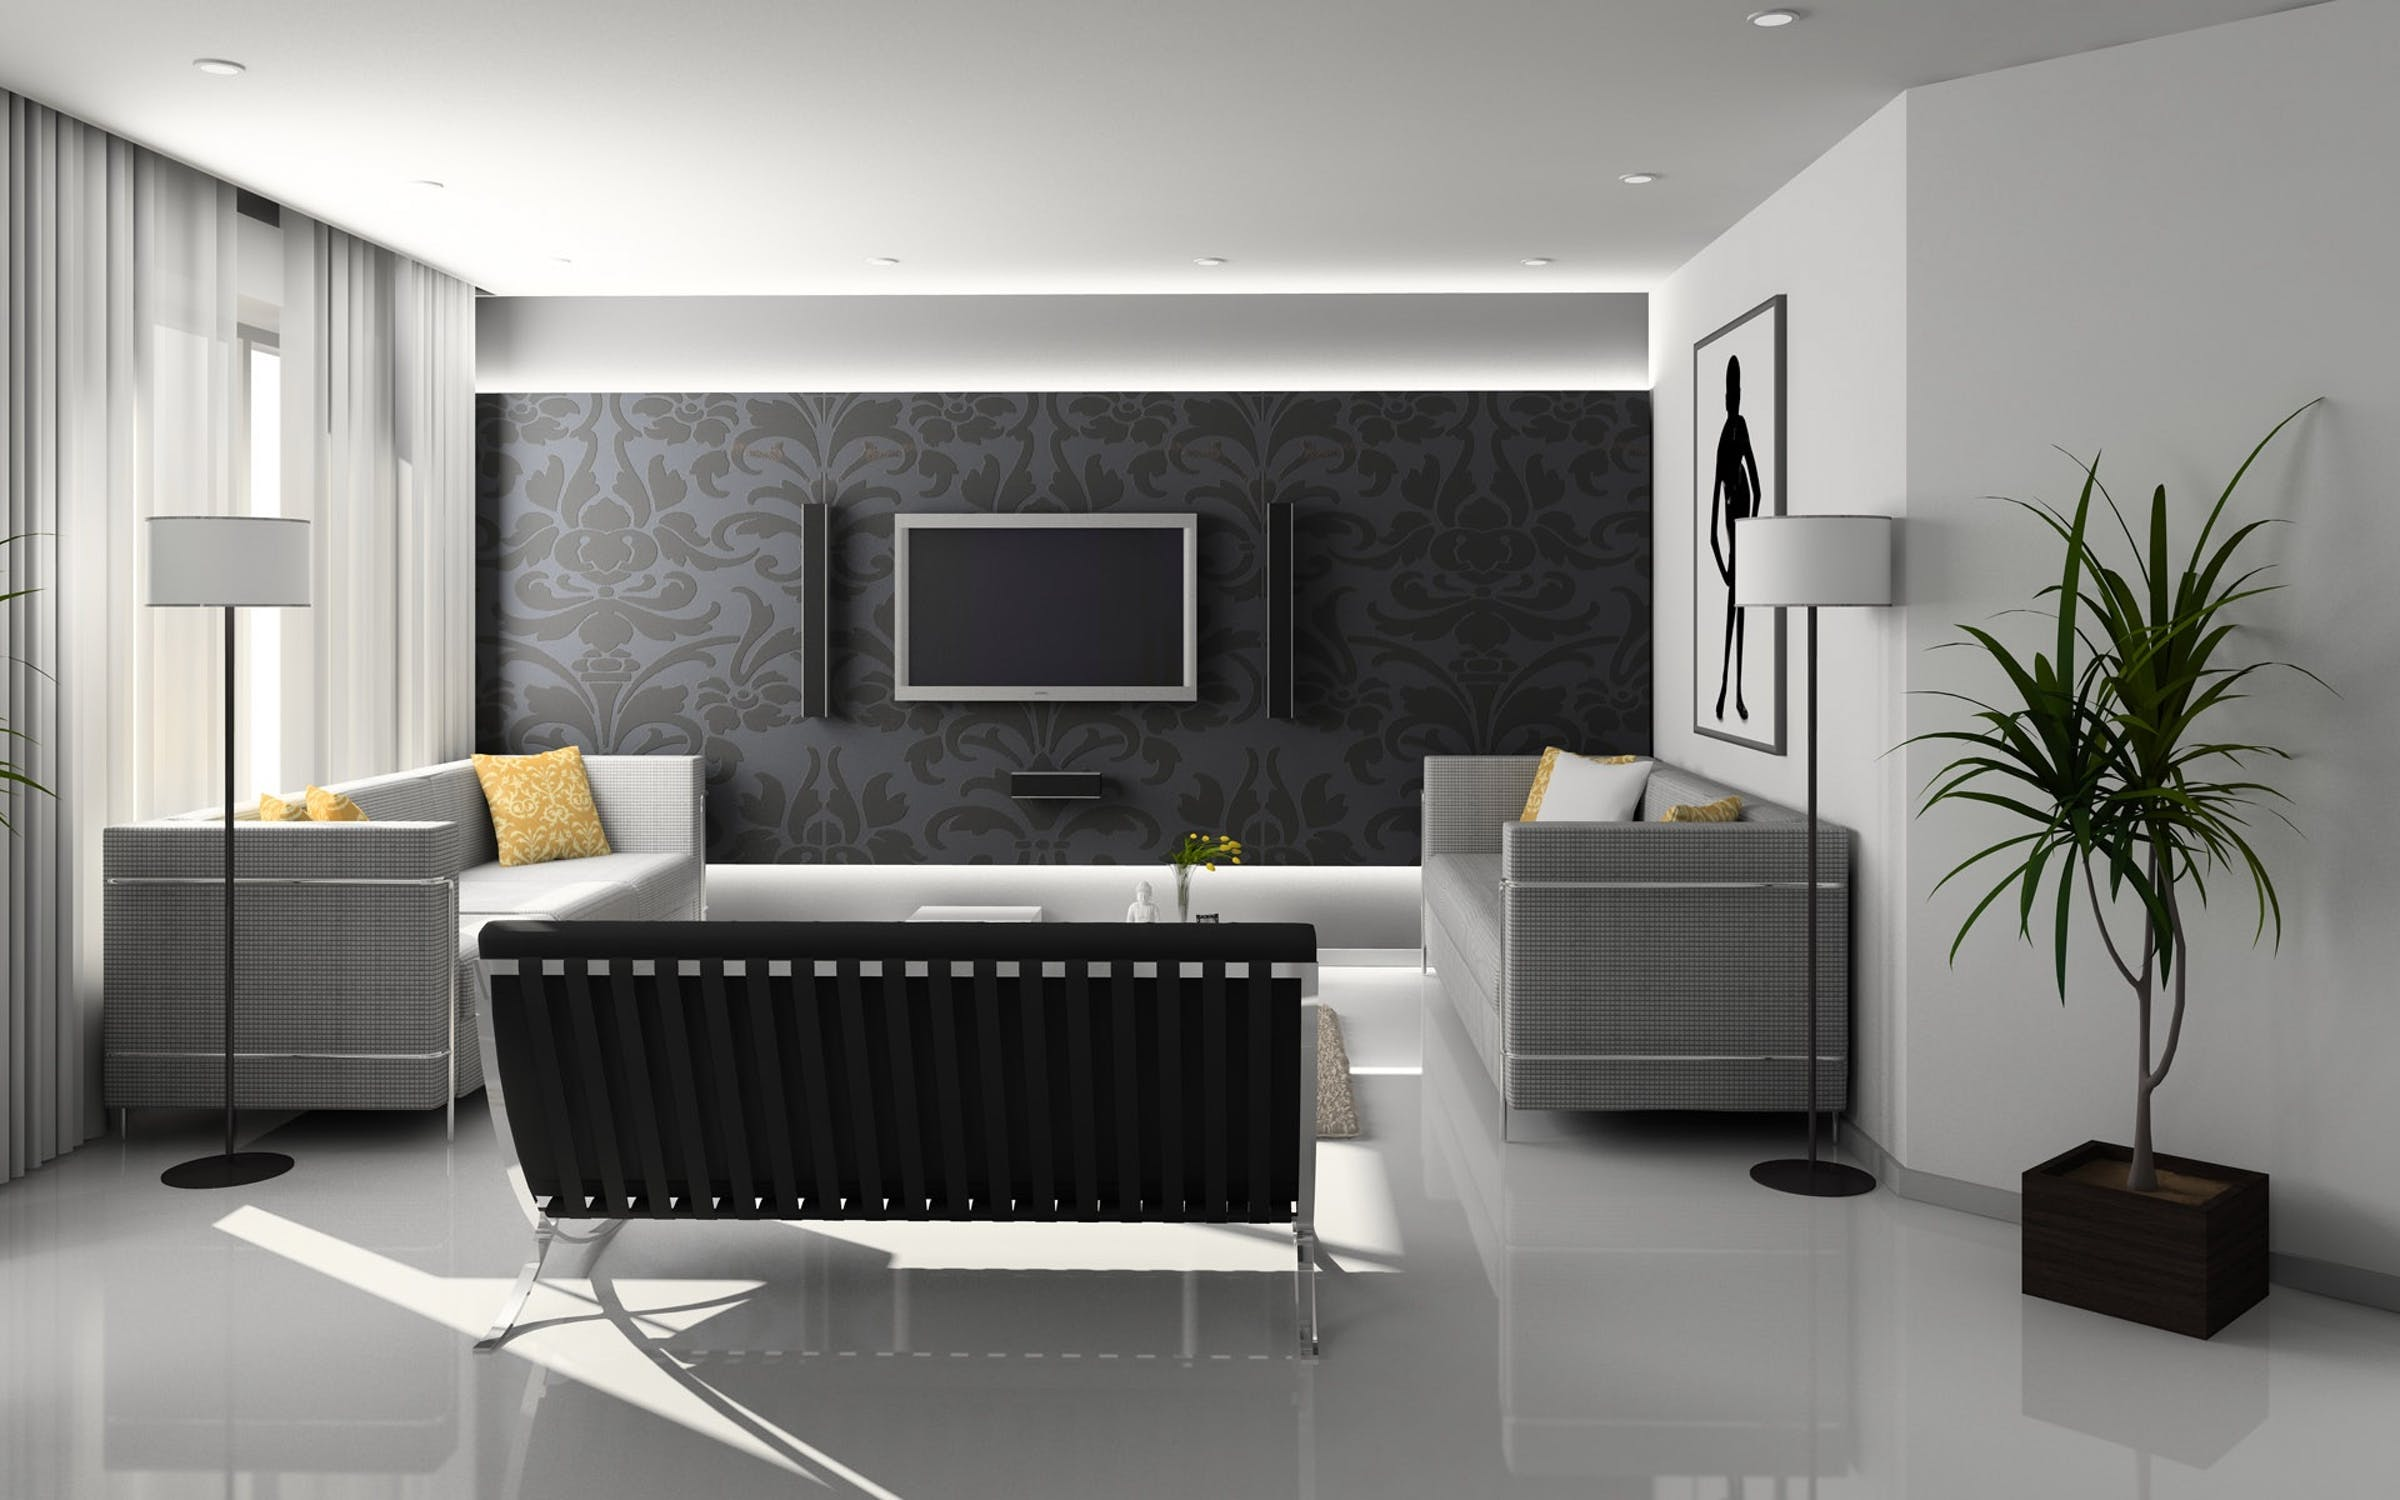 3 Key factors for personally adapted luxury in interior design